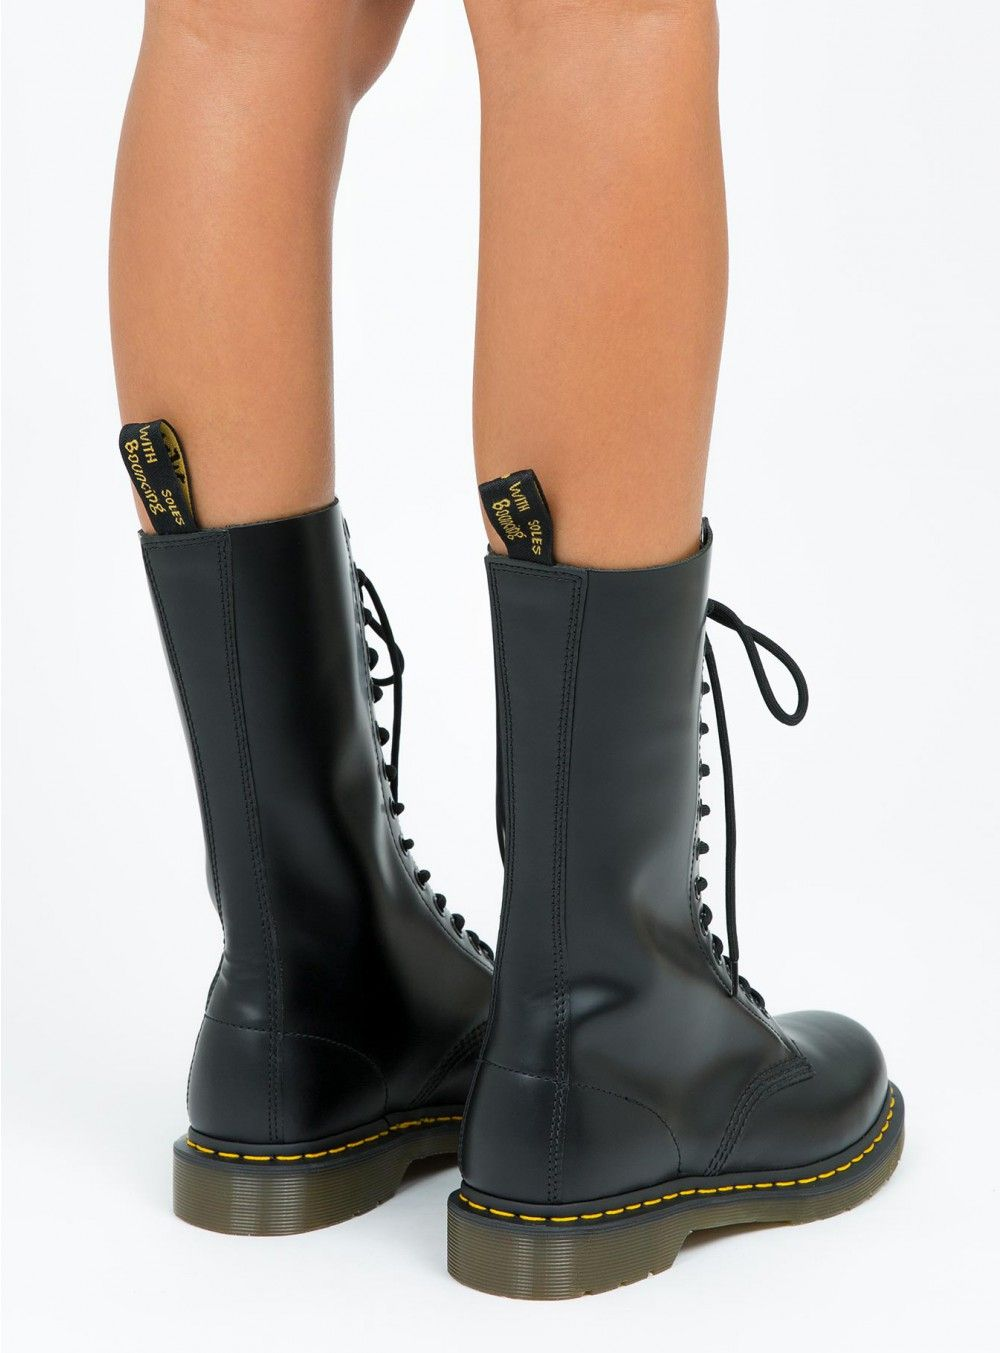 00eb3a9e6478f Dr. Martens 1914 14 Eye Smooth Boots    wear with black denim skirt ...